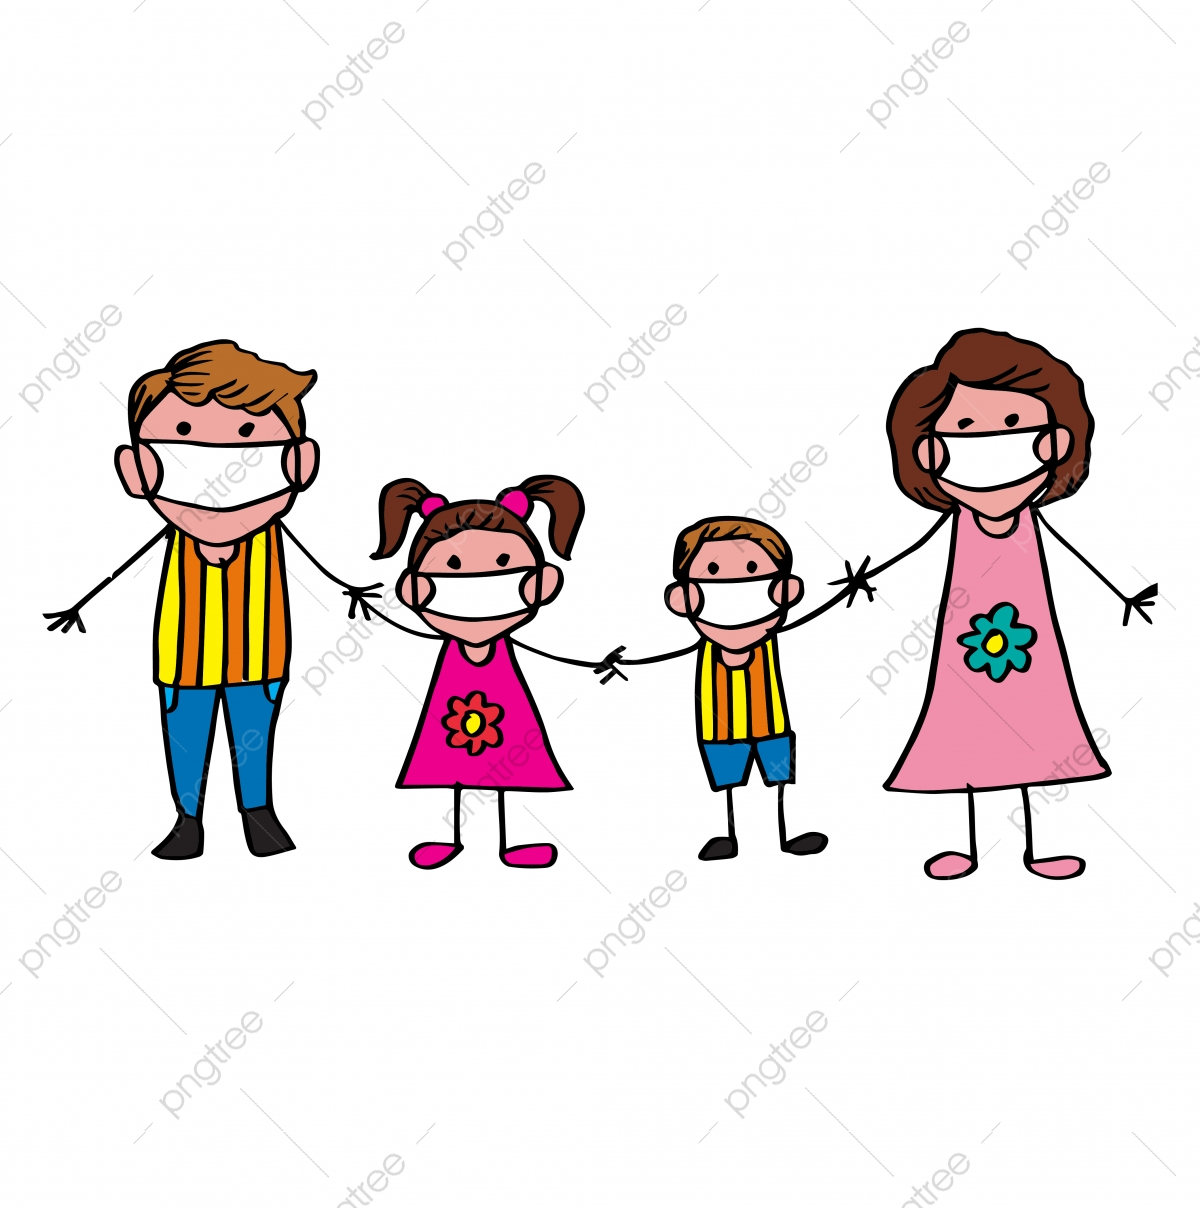 Cartoon Family Png Images Vector And Psd Files Free Download On Pngtree